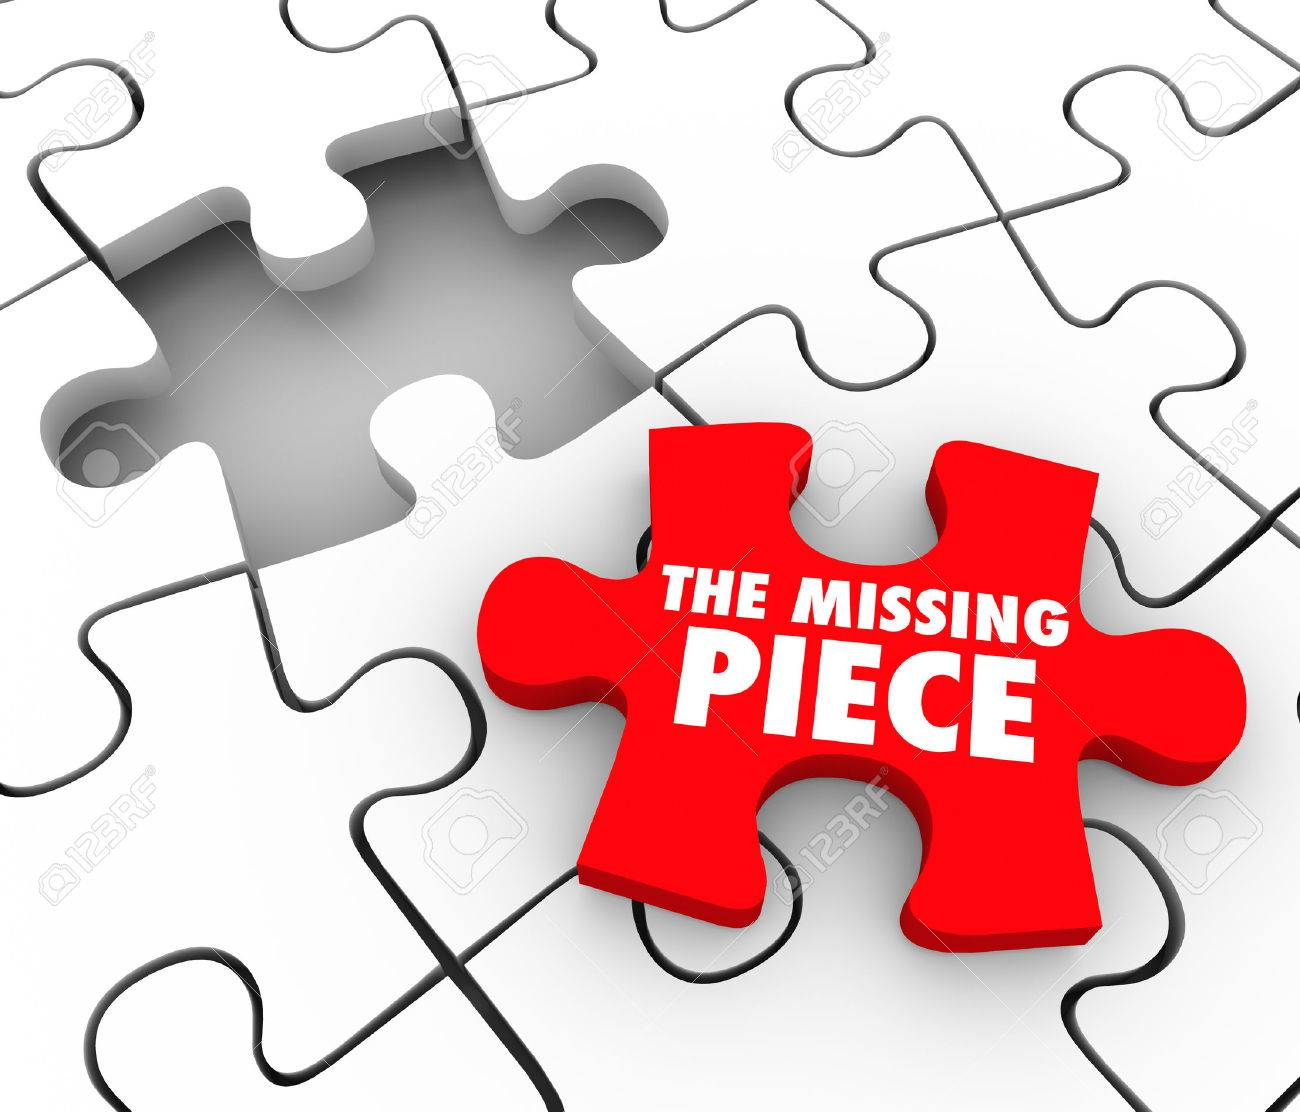 The Missing Piece Words On A Red Puzzle Piece To Complete A Puzzle - Print Missing Puzzle Piece